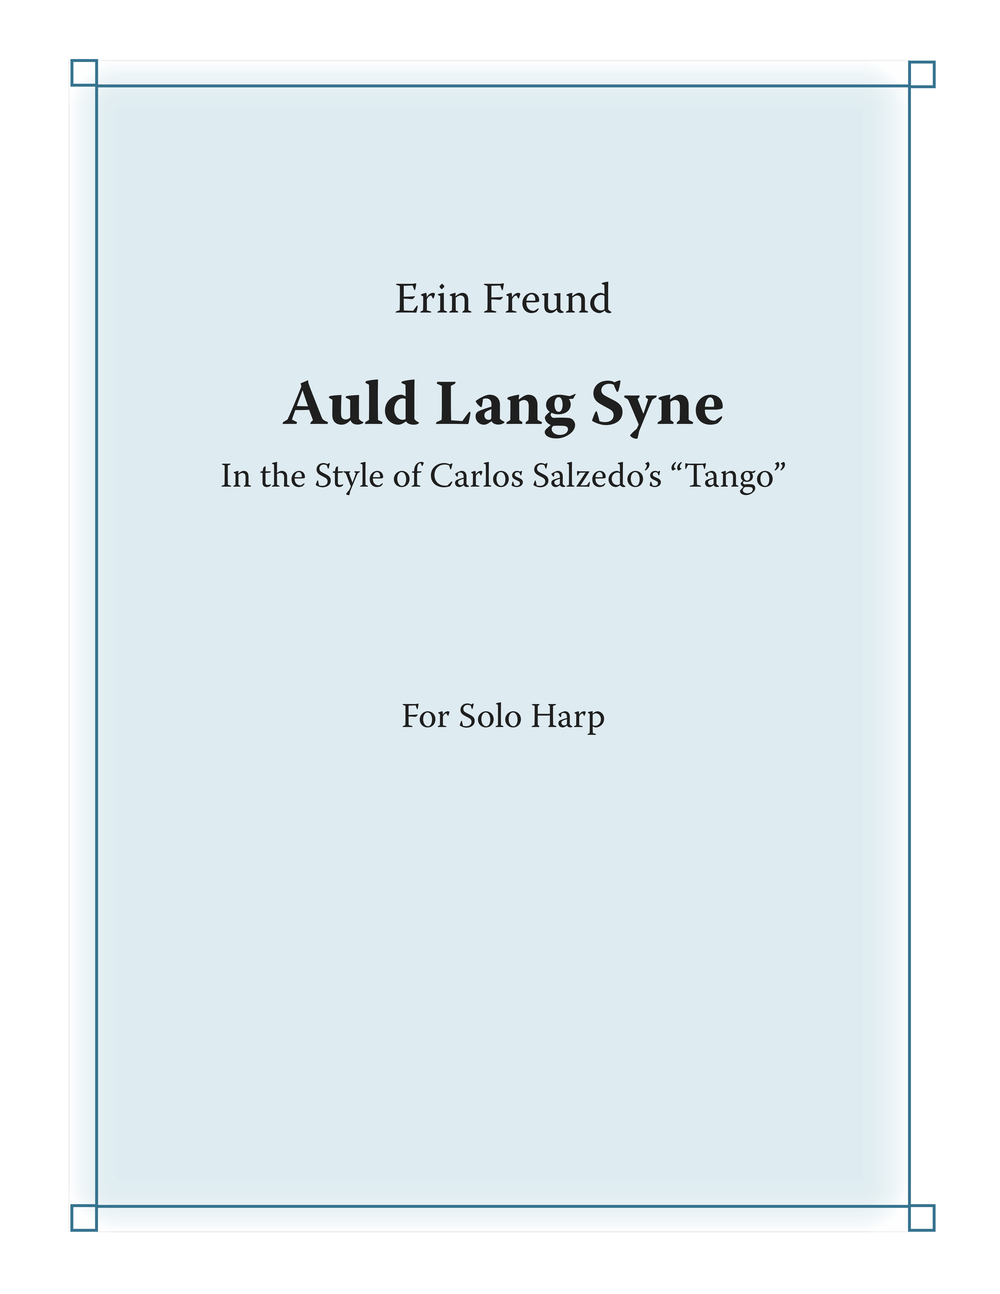 Auld Lang Syne Tango cover.jpg